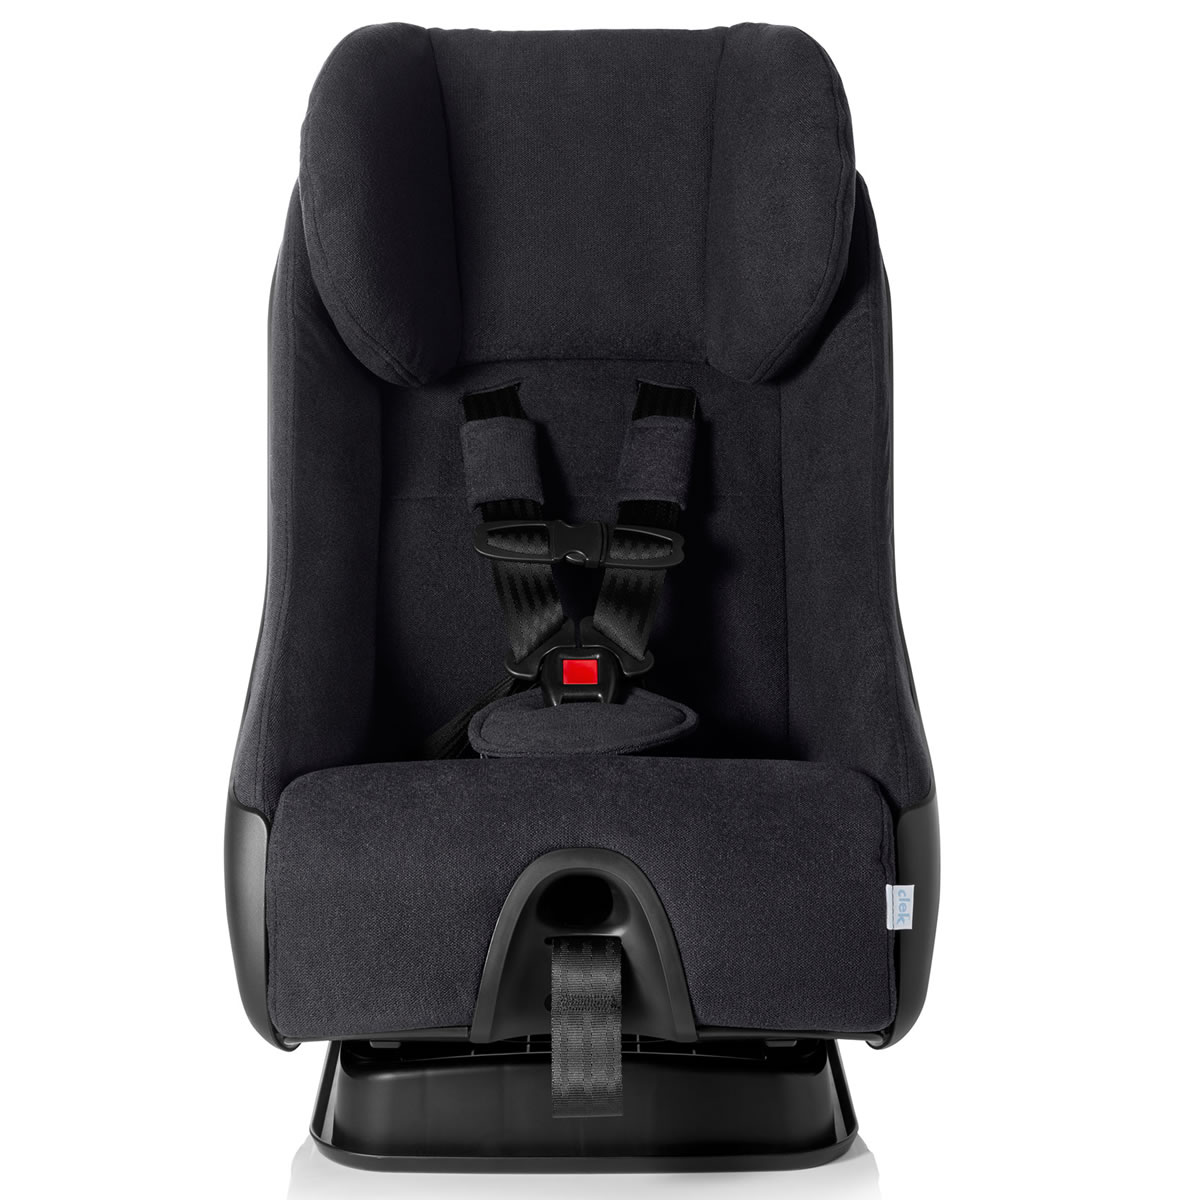 clek fllo convertible car seat tokidoki all over. Black Bedroom Furniture Sets. Home Design Ideas